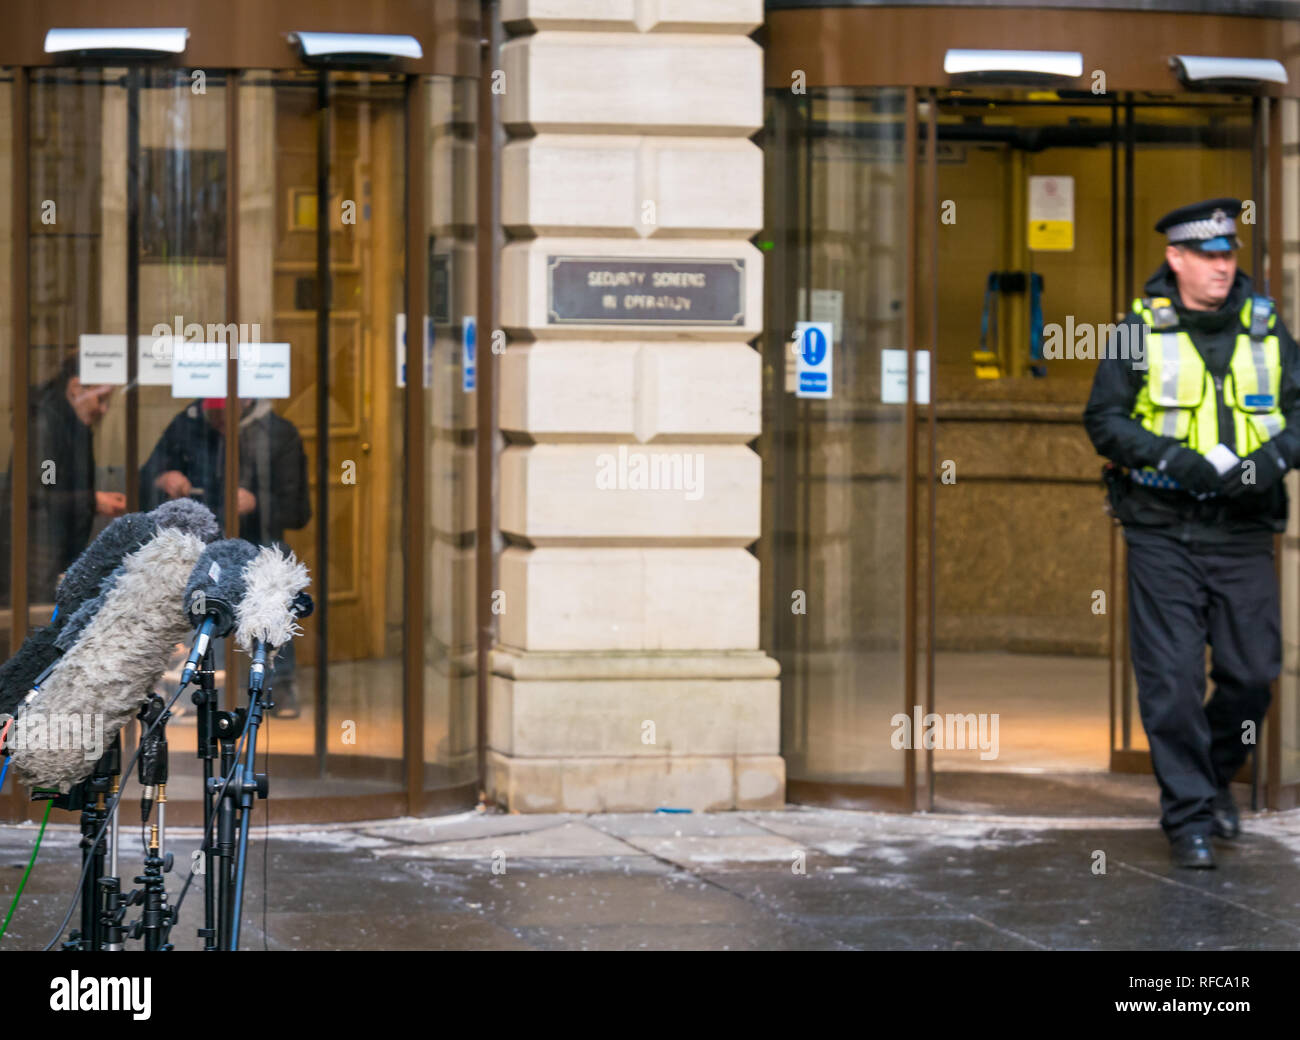 Edinburgh Sheriff Court with press microphones and policeman on duty, Edinburgh, Scotland, UK - Stock Image